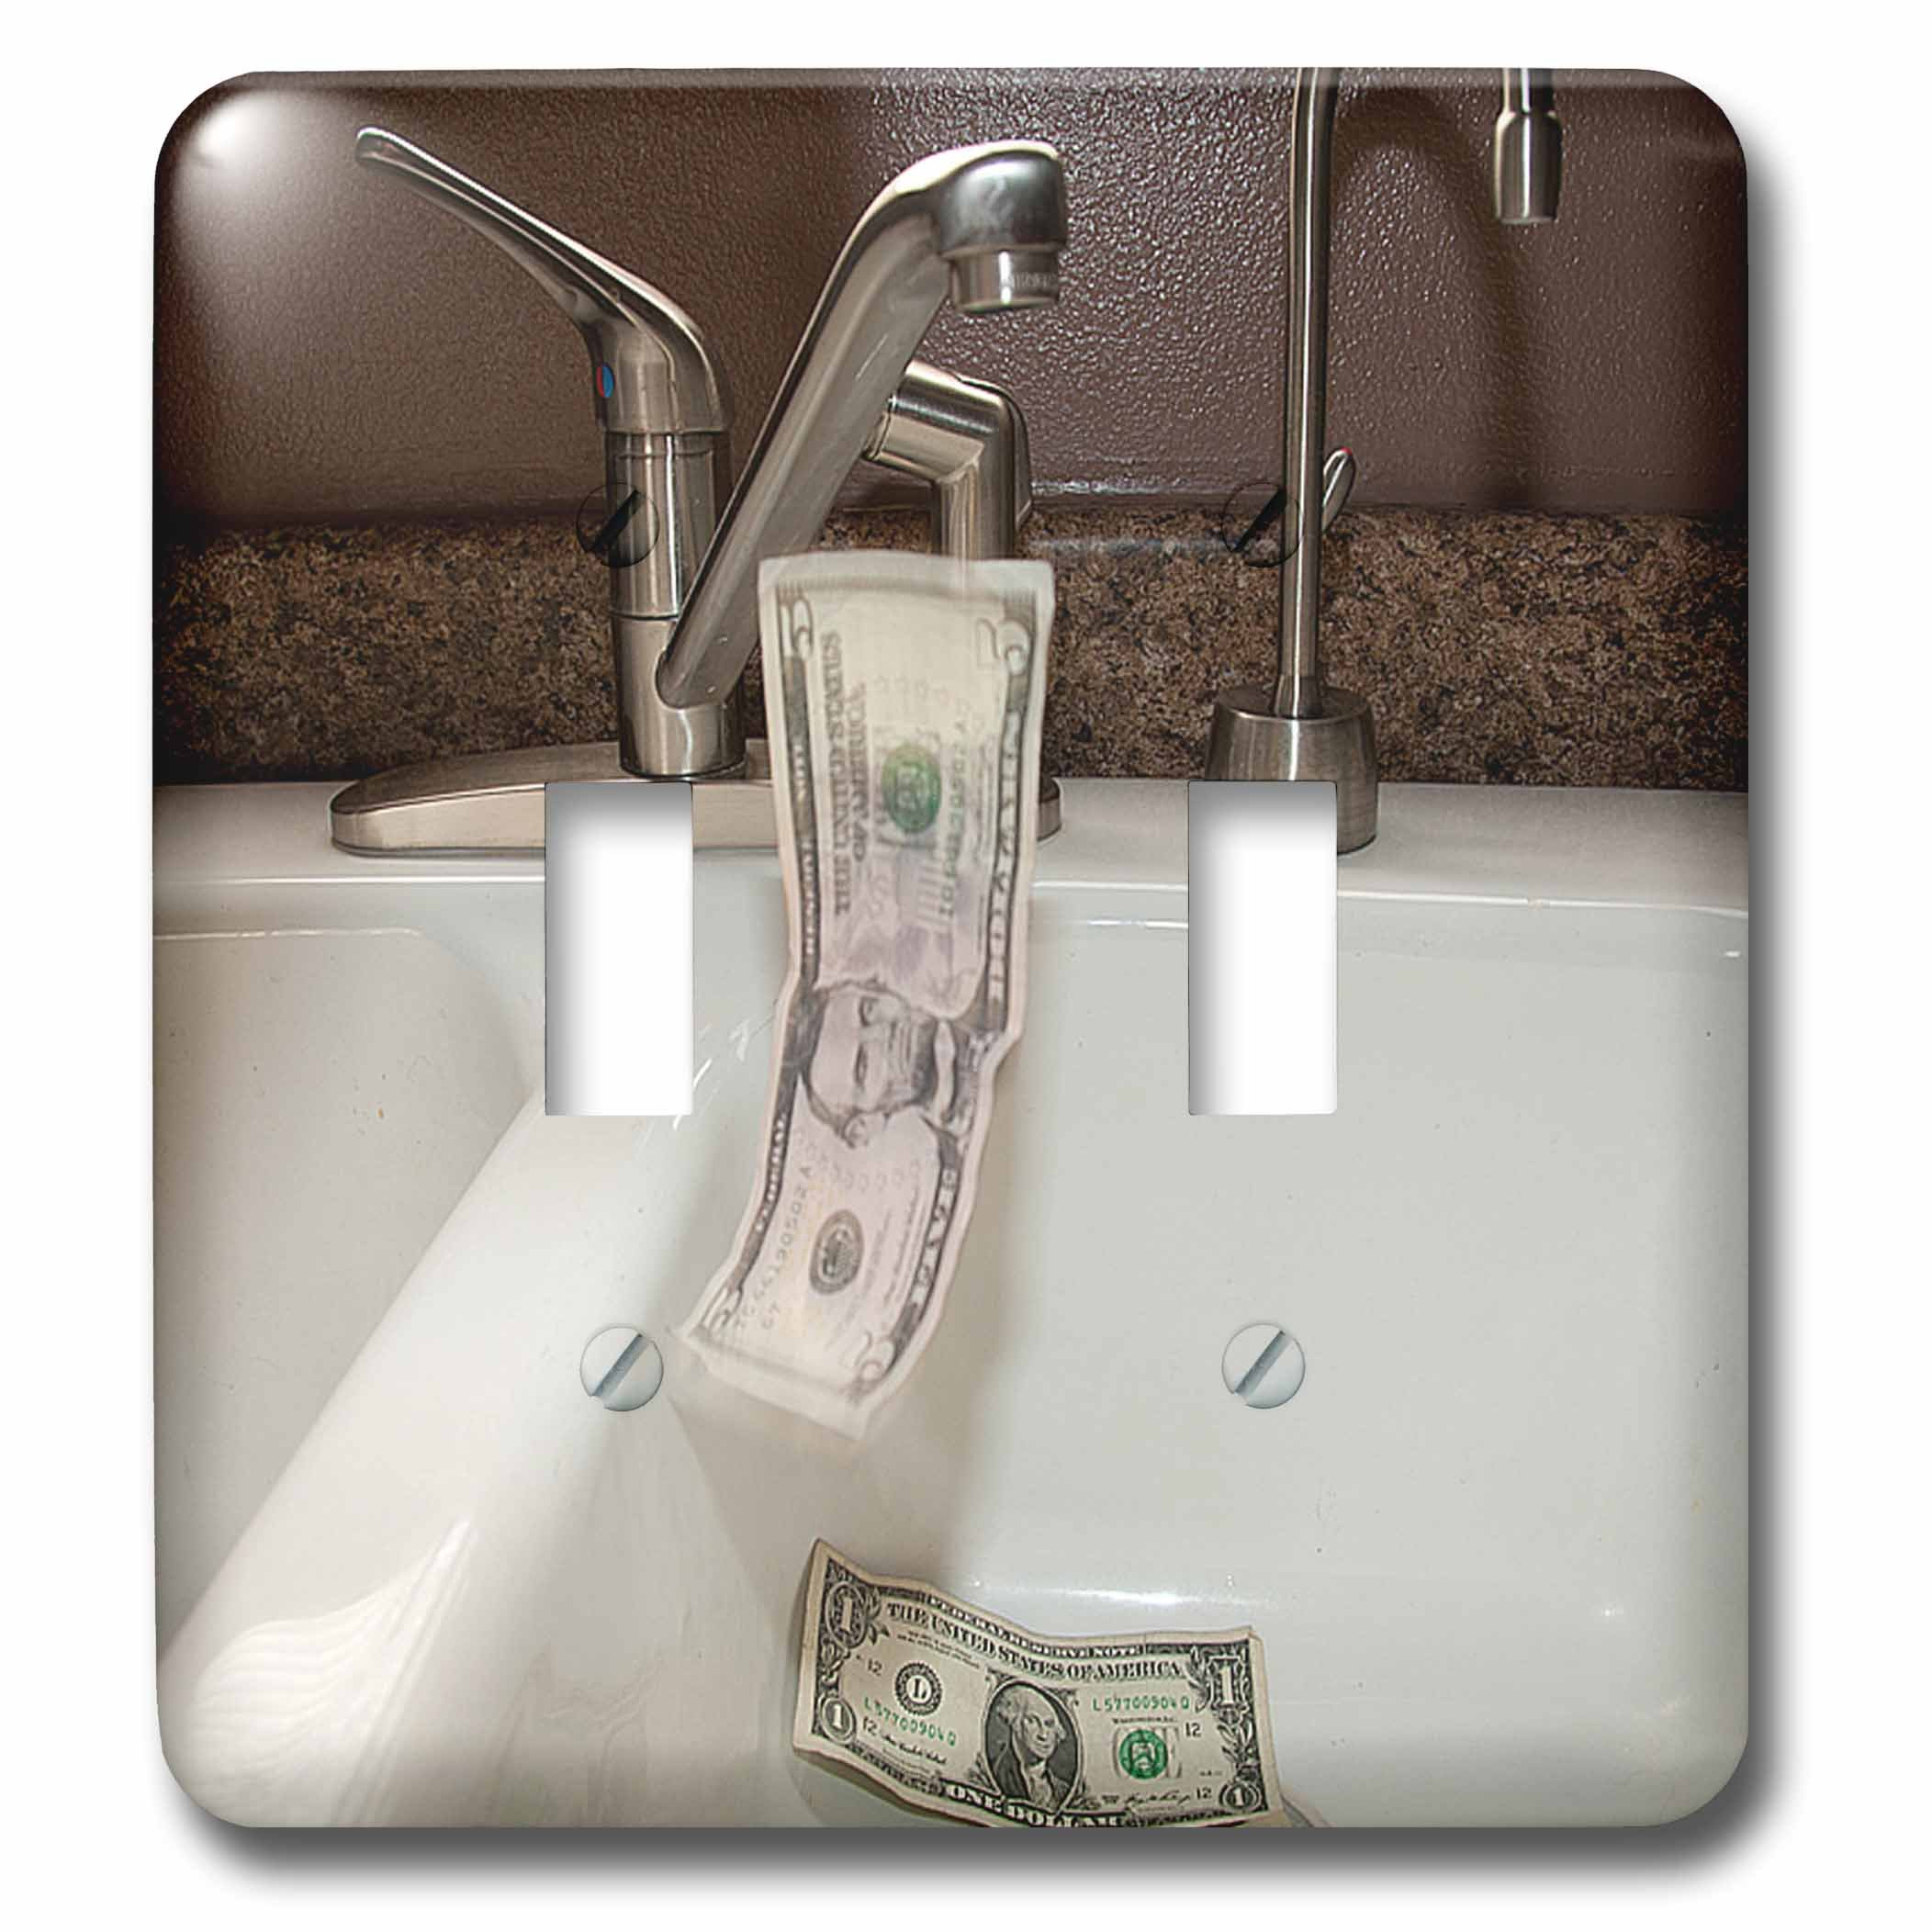 3dRose LLC lsp_50514_2 A White Porcelain Kitchen Sink with A Five and Two One Dollar Bills Falling Into It Down The Drain Double Toggle Switch